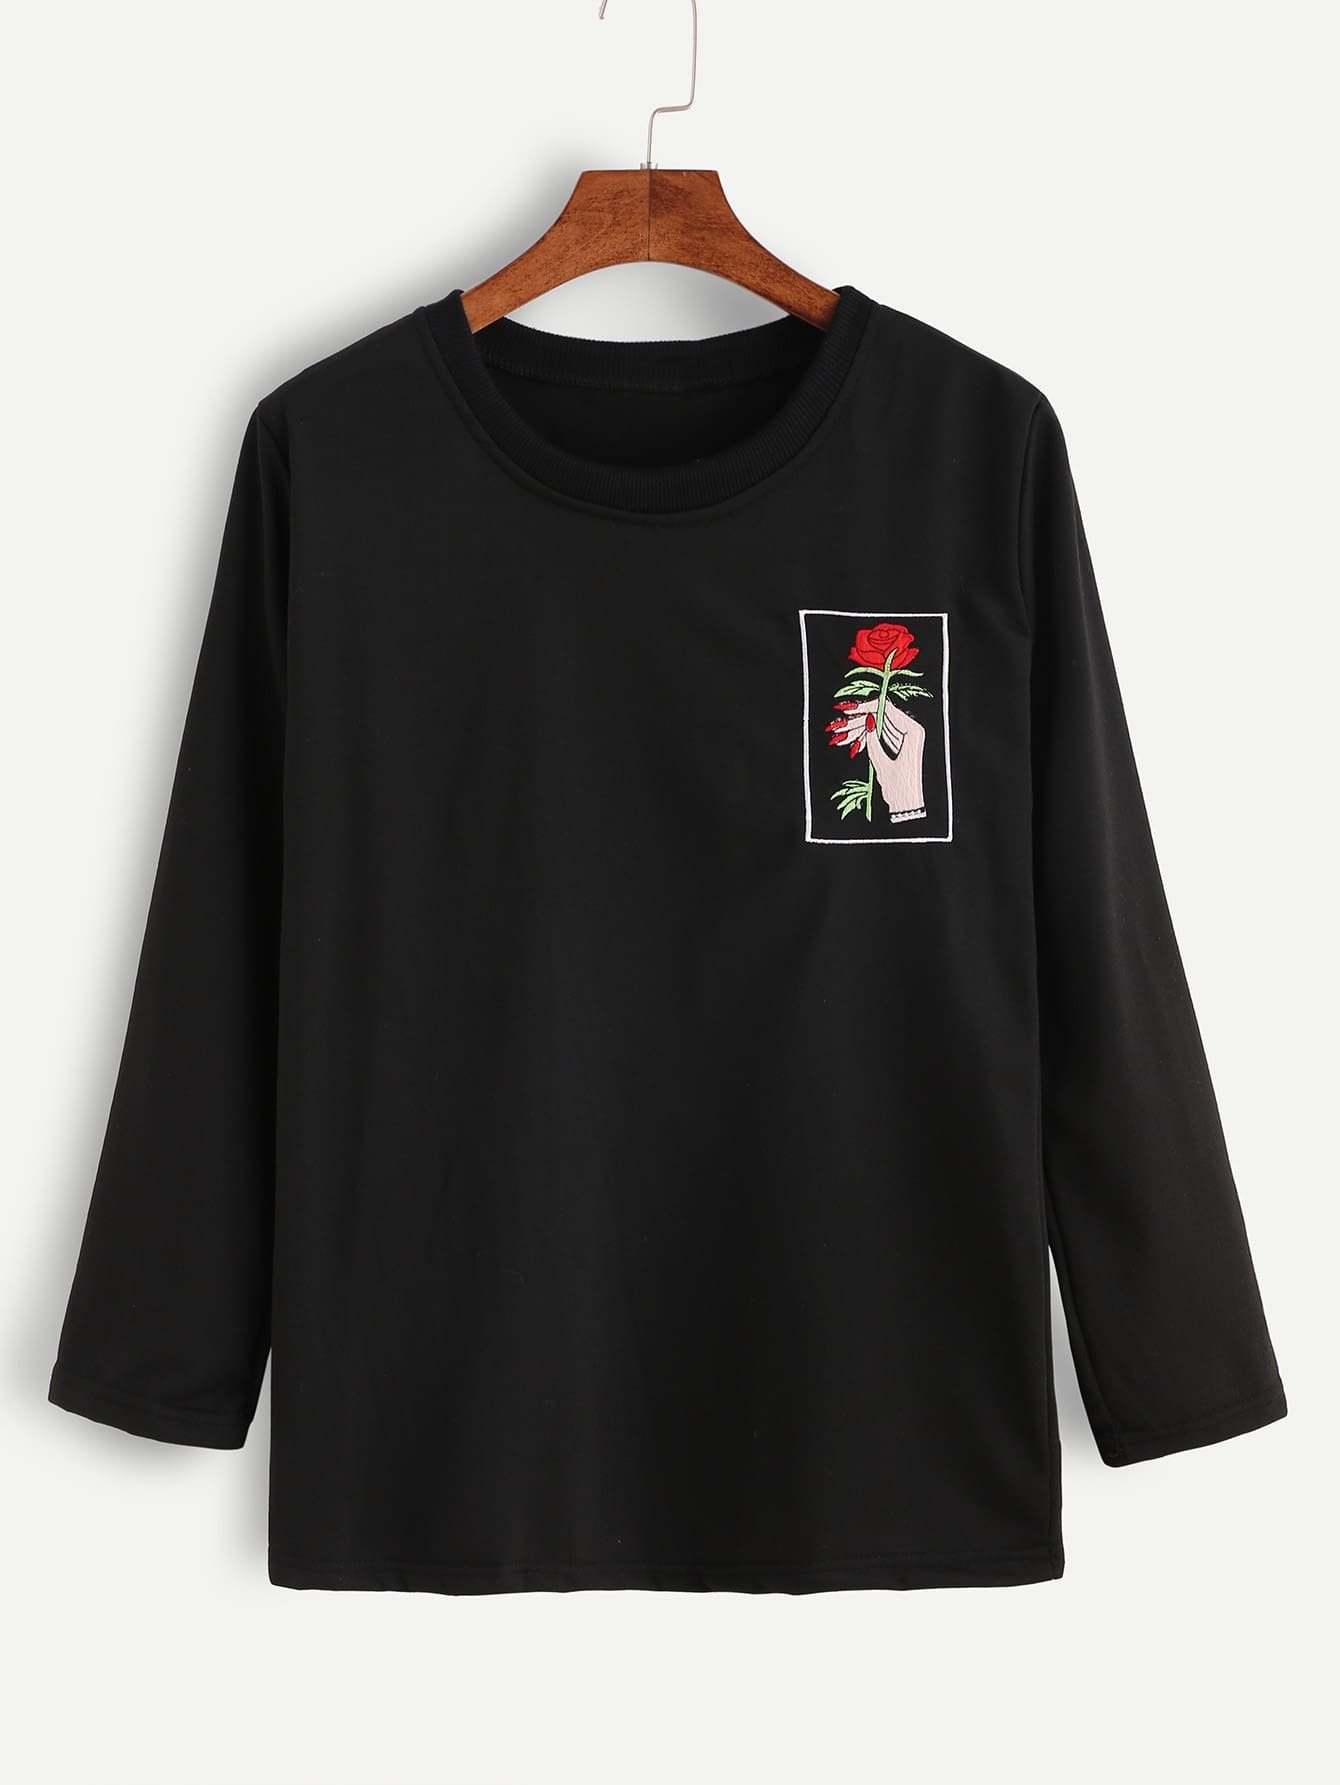 ee883b2f39 Black Hand And Rose Embroidery T-shirt EmmaCloth-Women Fast Fashion ...